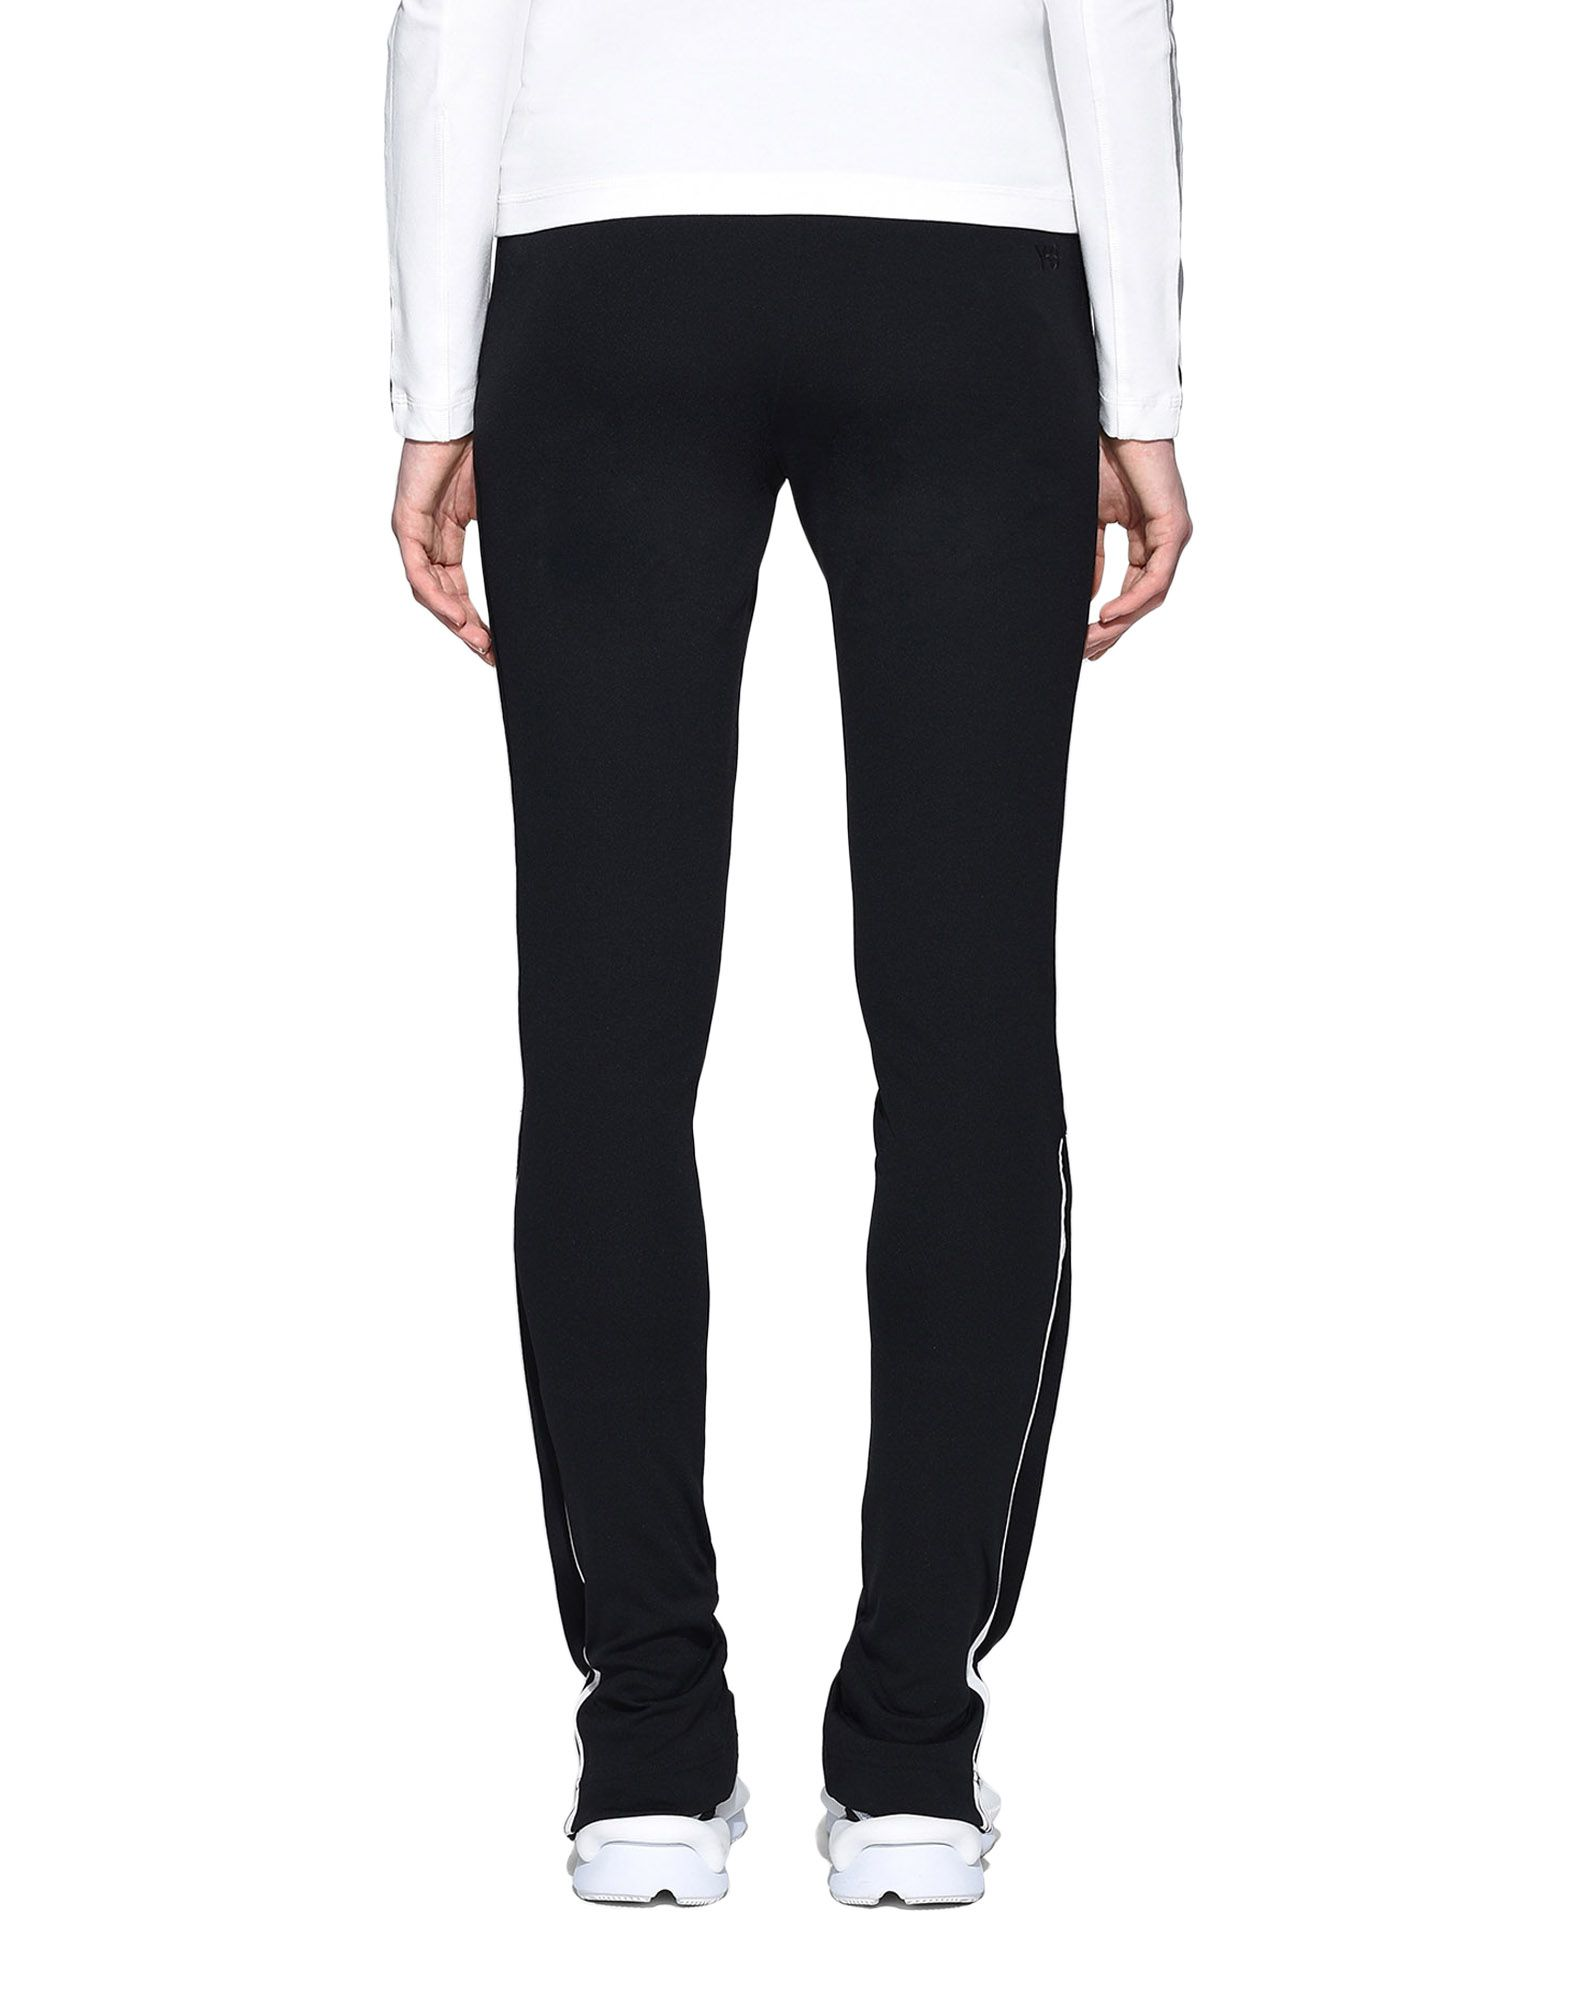 Y-3 Y-3 3-Stripes Firebird Track Pants Track pant Woman d